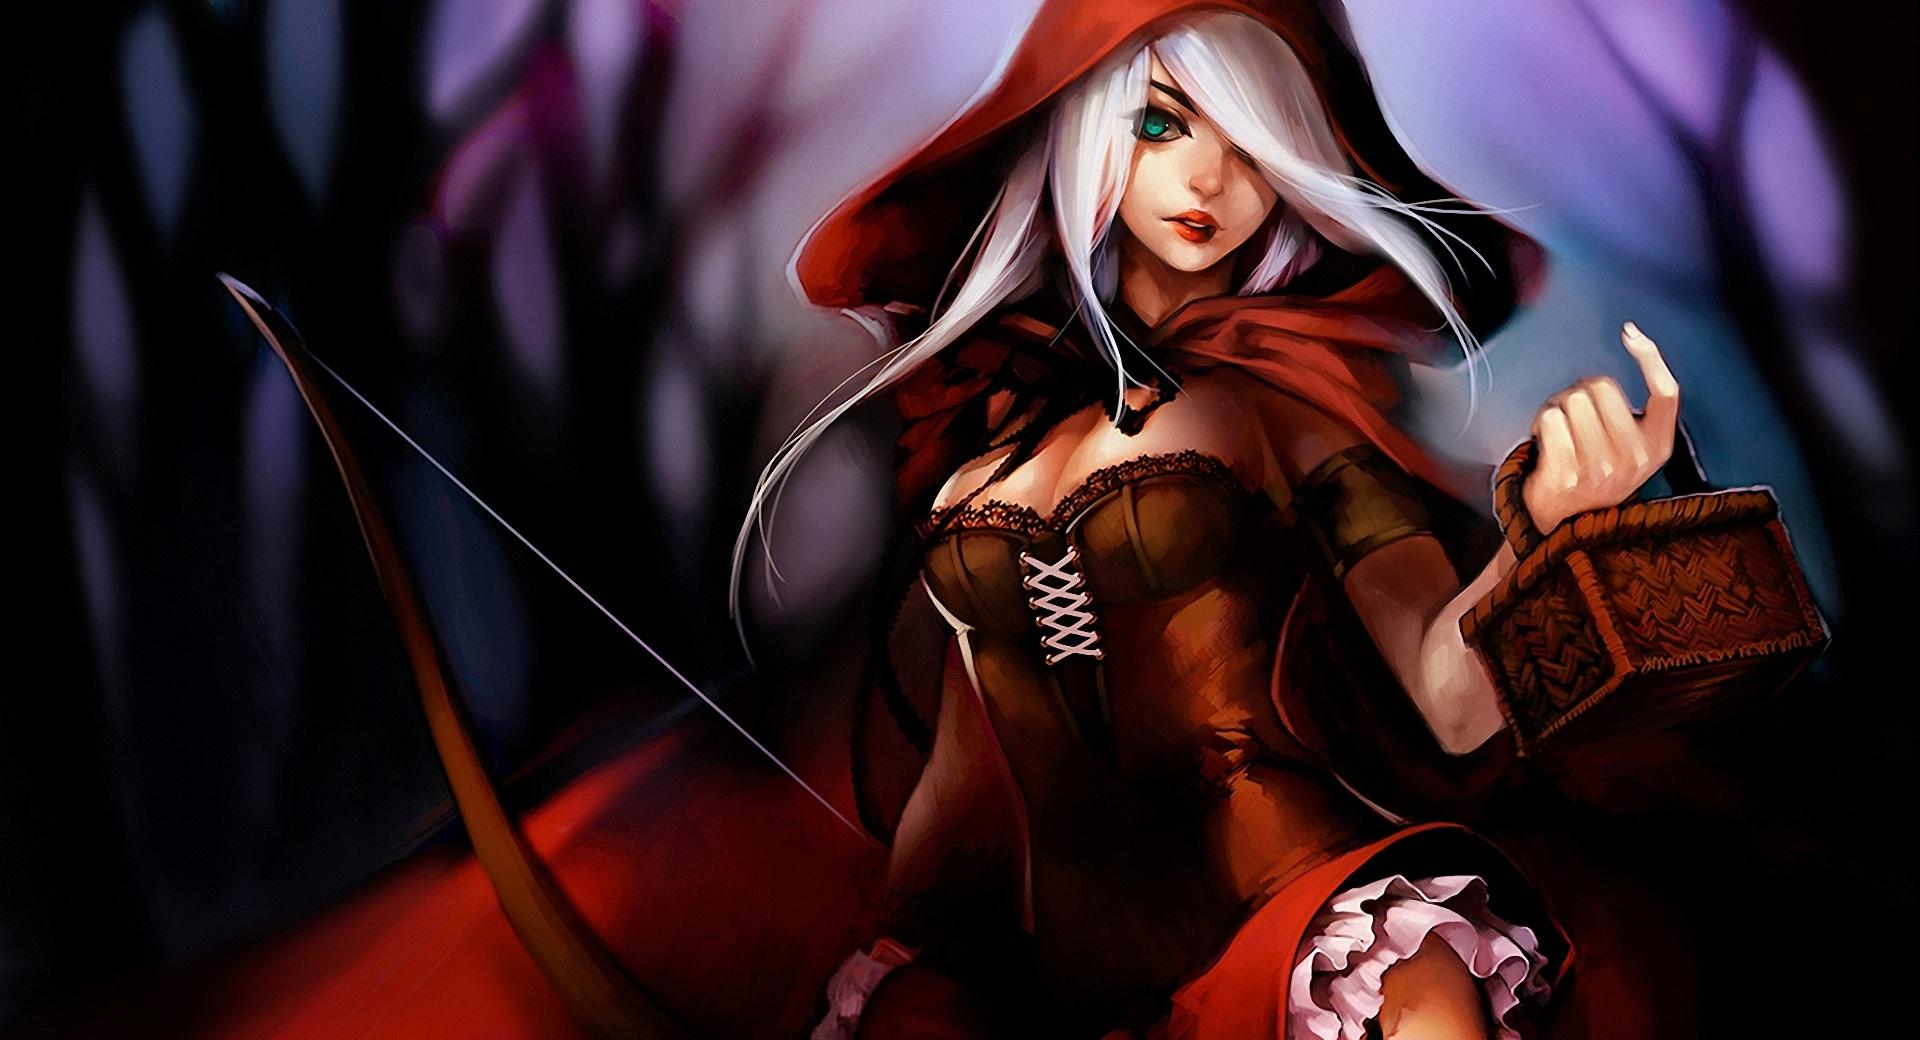 Red Riding Hood Illustration wallpapers HD quality